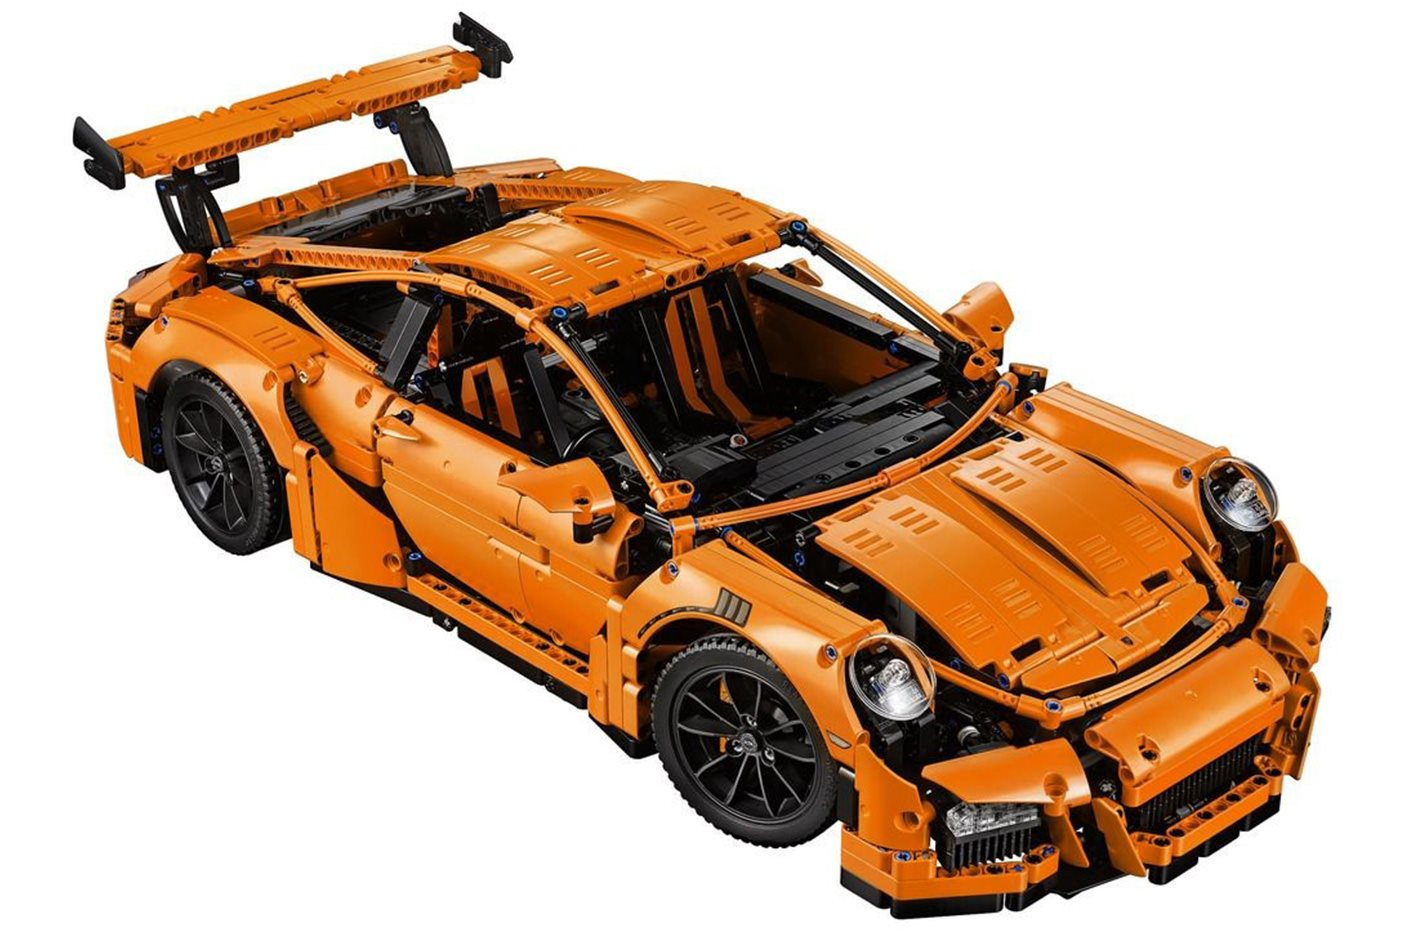 lego reveals porsche 911 gt3 rs technic set motor. Black Bedroom Furniture Sets. Home Design Ideas